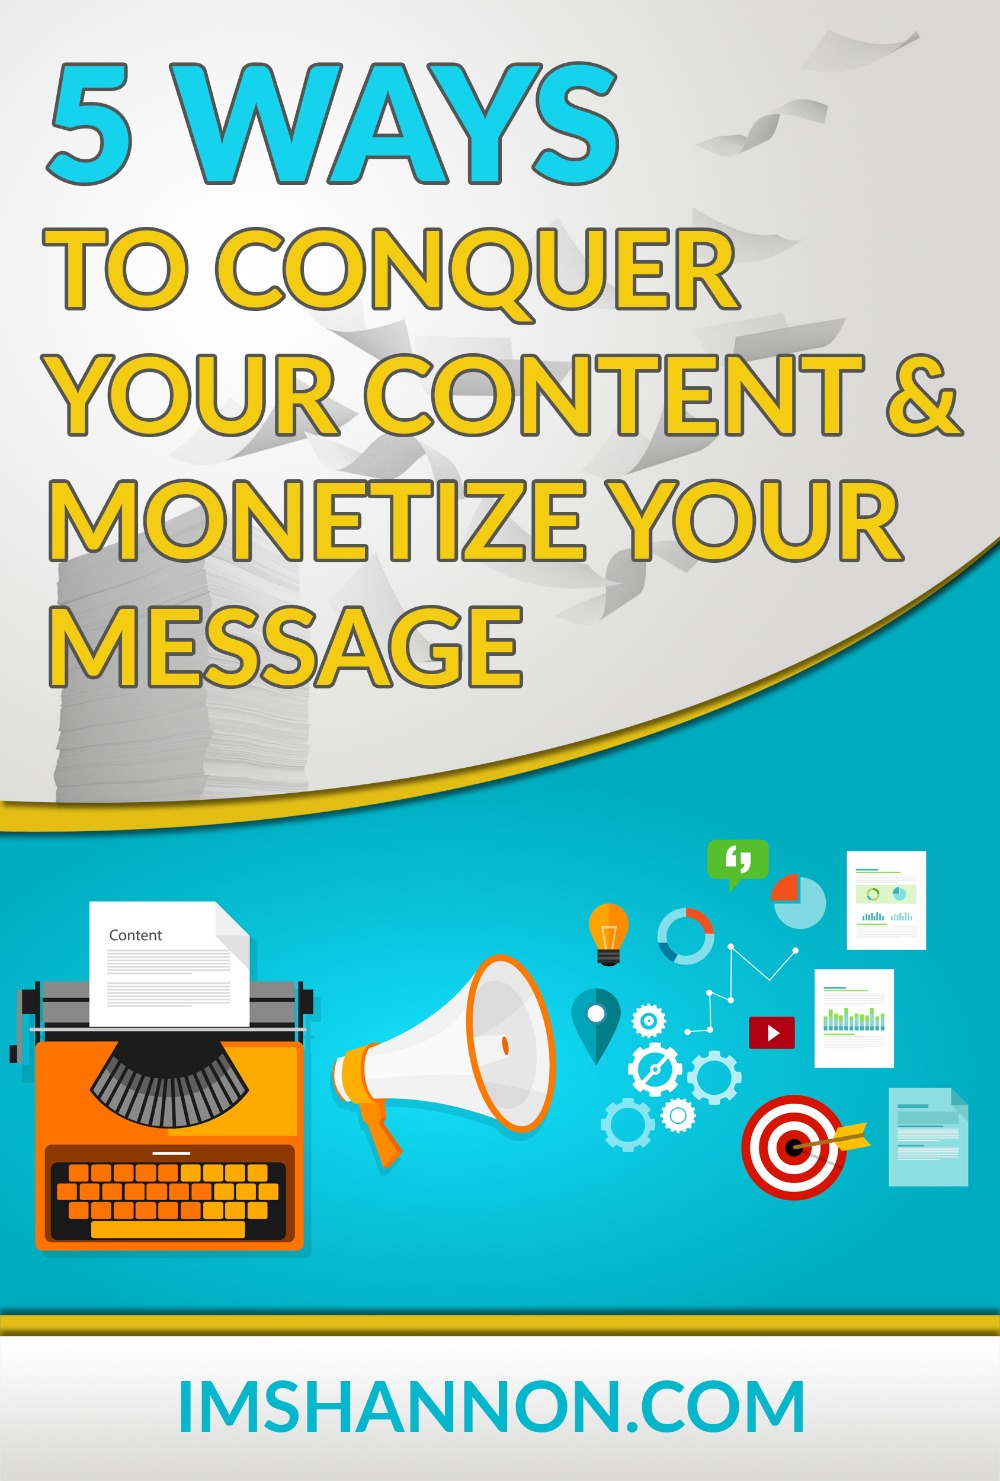 E-book: 5 Ways to Conquer your Content & Monetize your Message